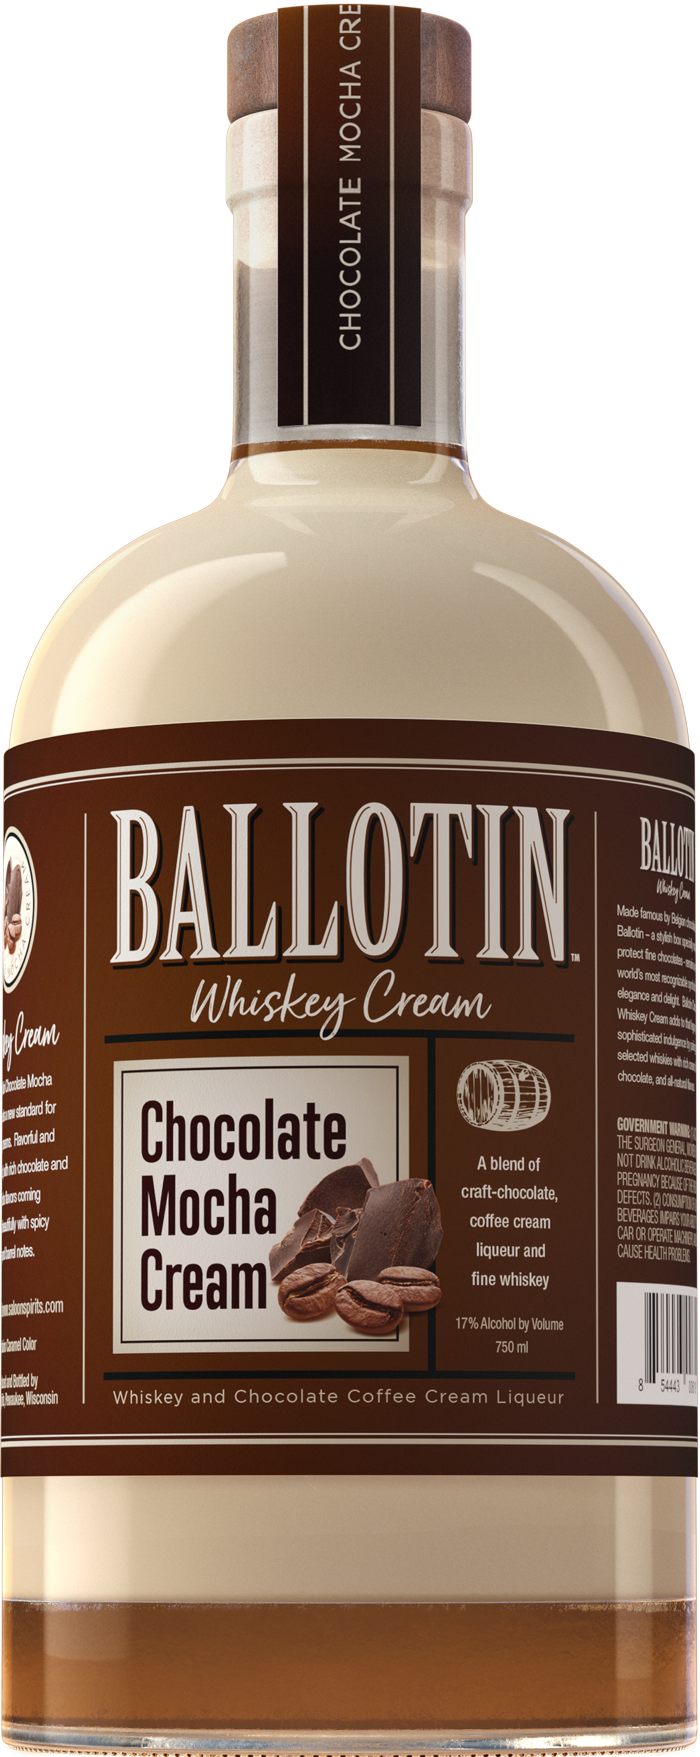 Chocolate Mocha Cream